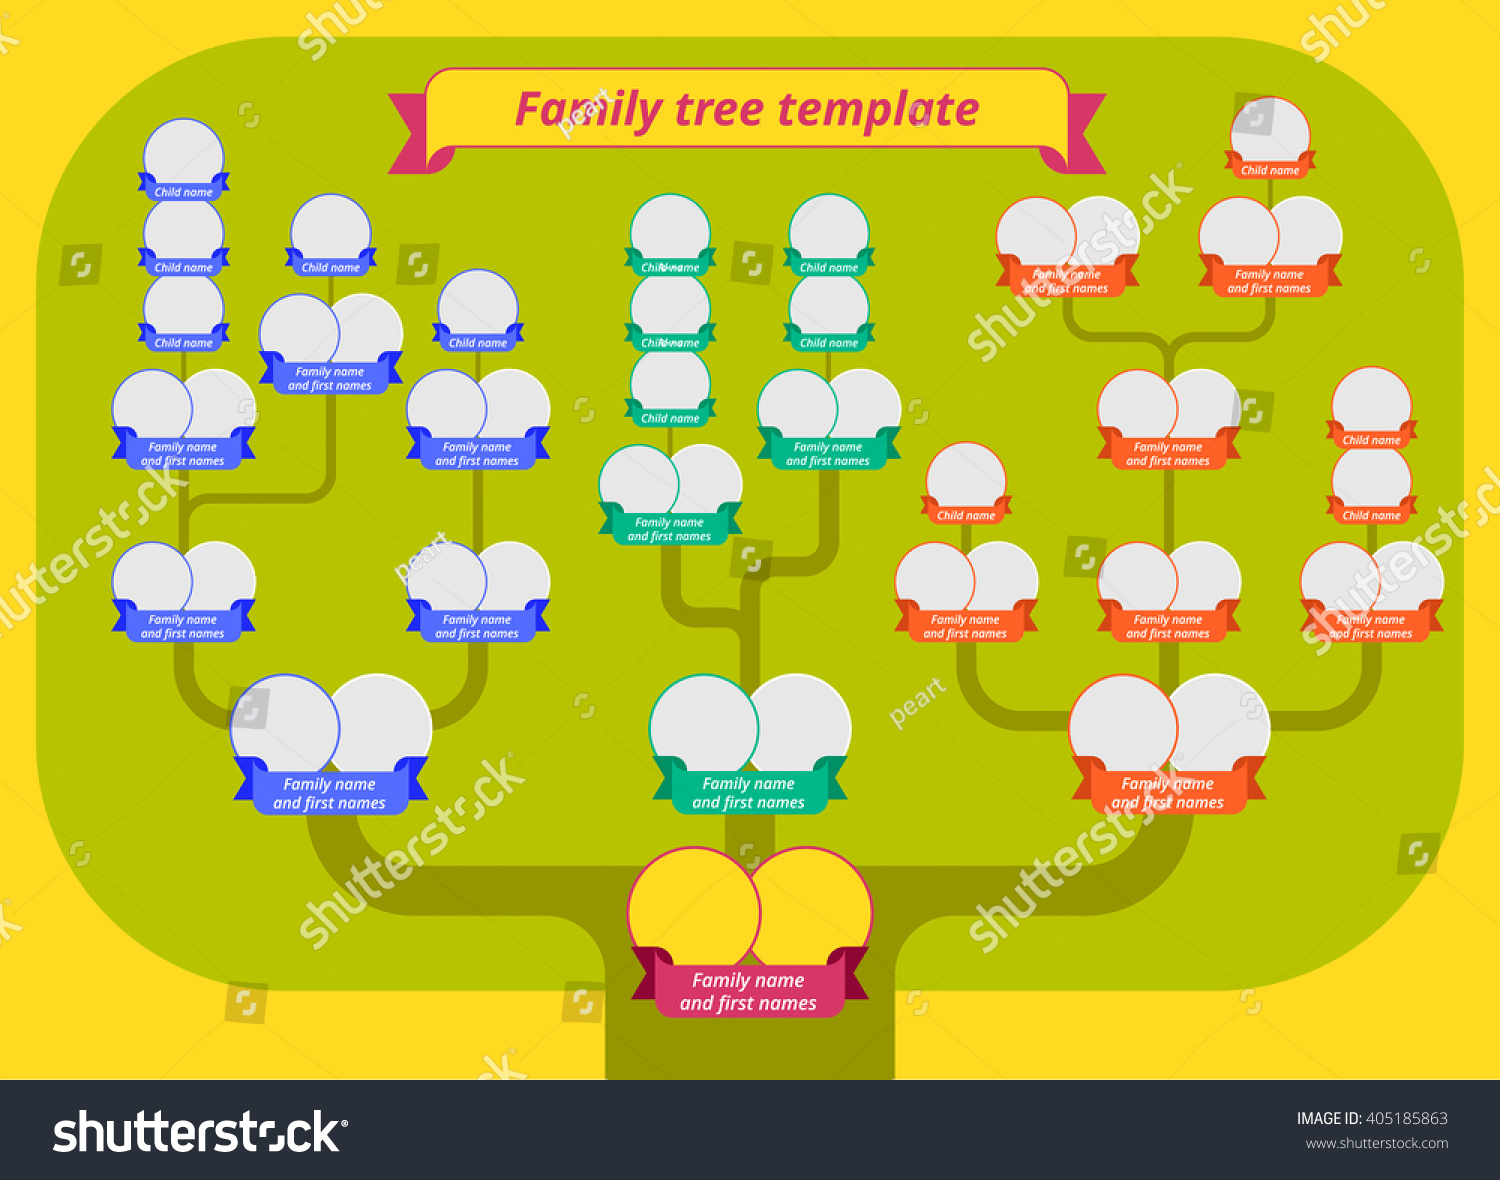 Family Tree Template Modern Flat Style Stock Vector Royalty Free